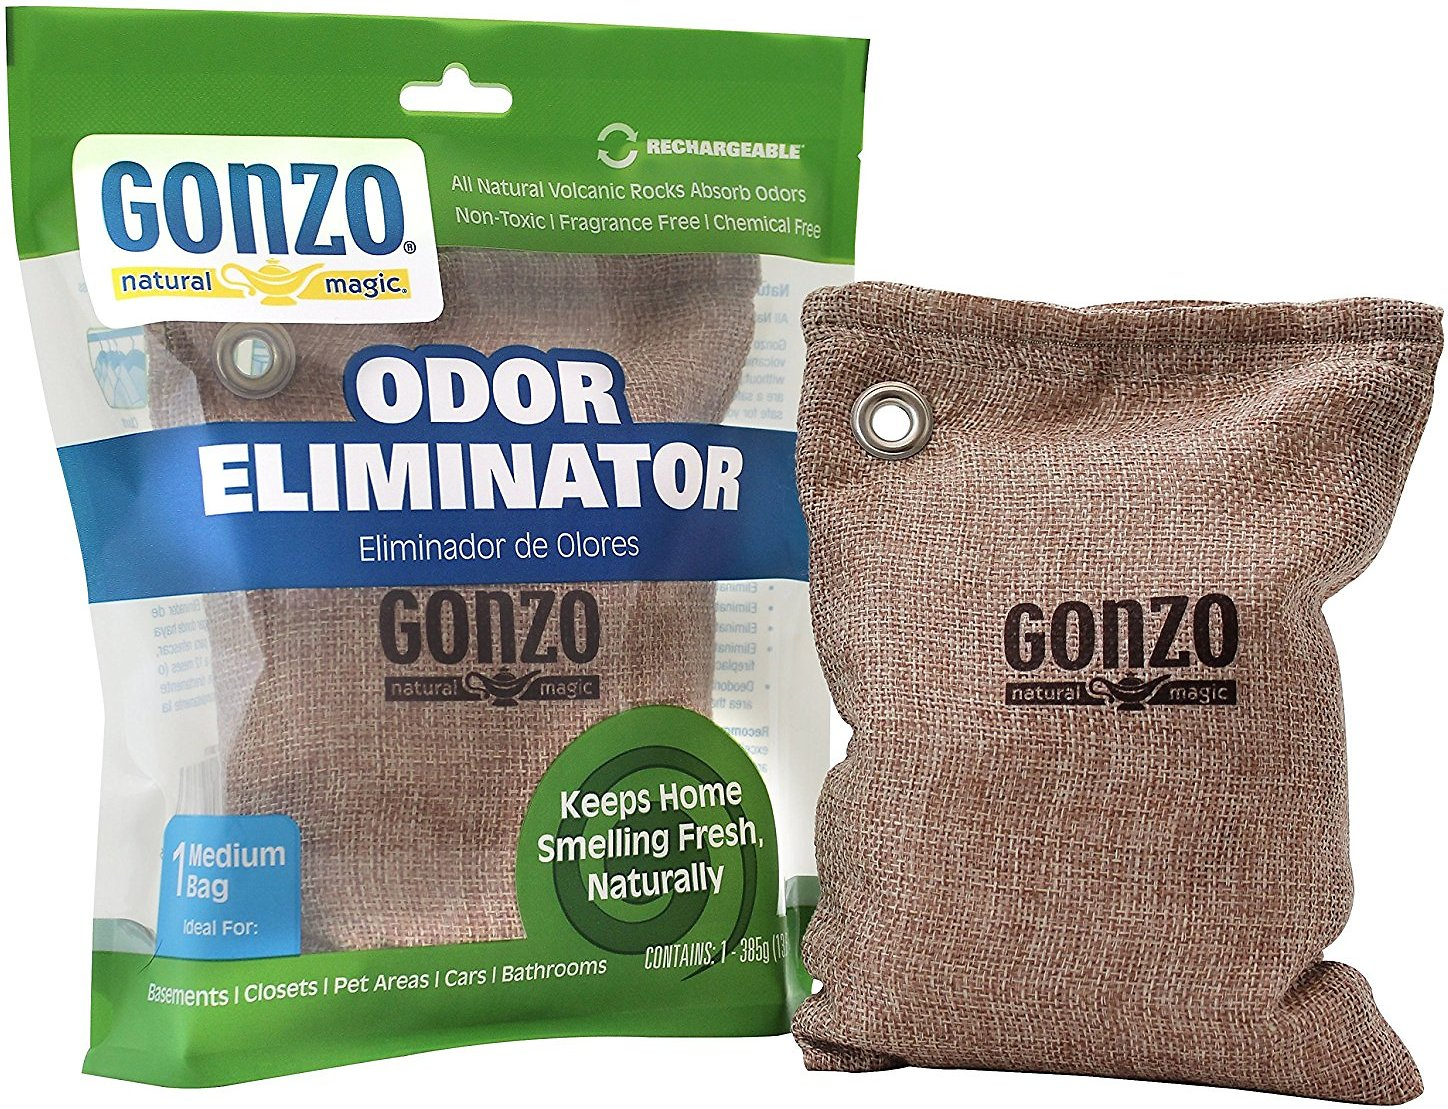 gonzo natural magic odor eliminator